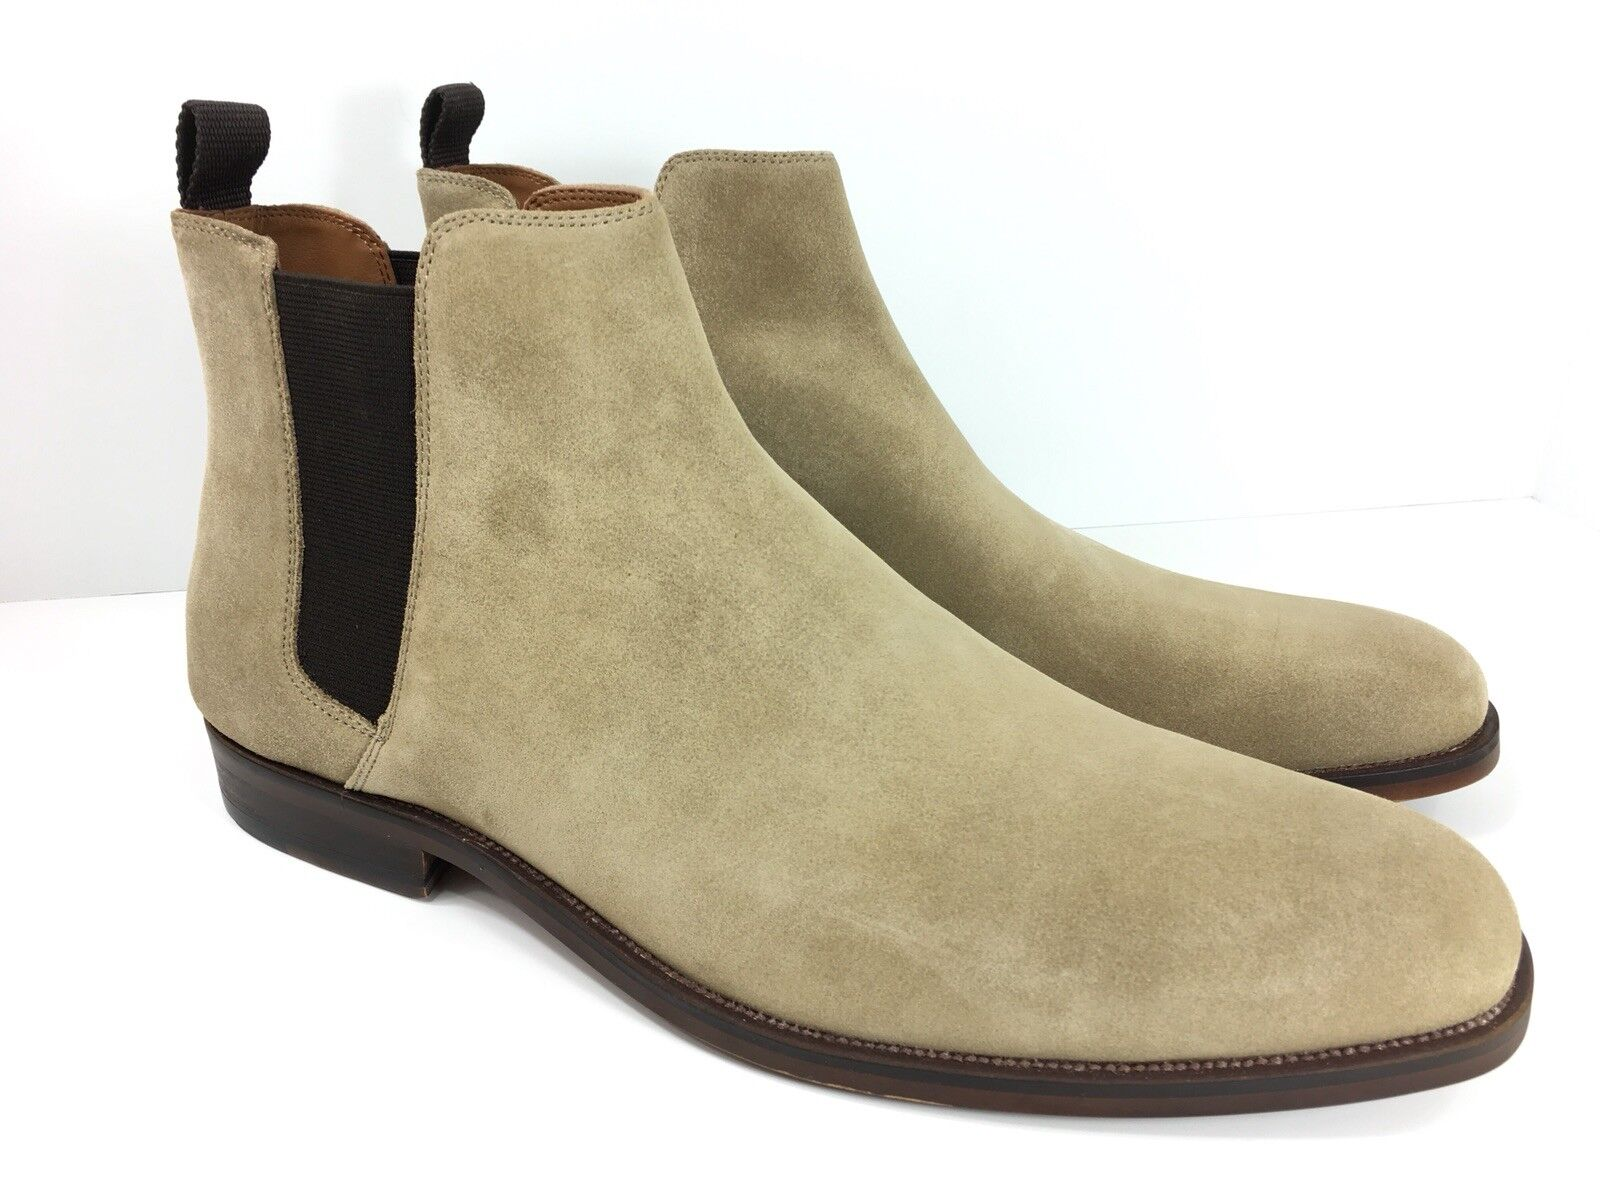 Aldo Men's Astaria Taupe Beige Brown Chelsea Ankle Slip On Boots New